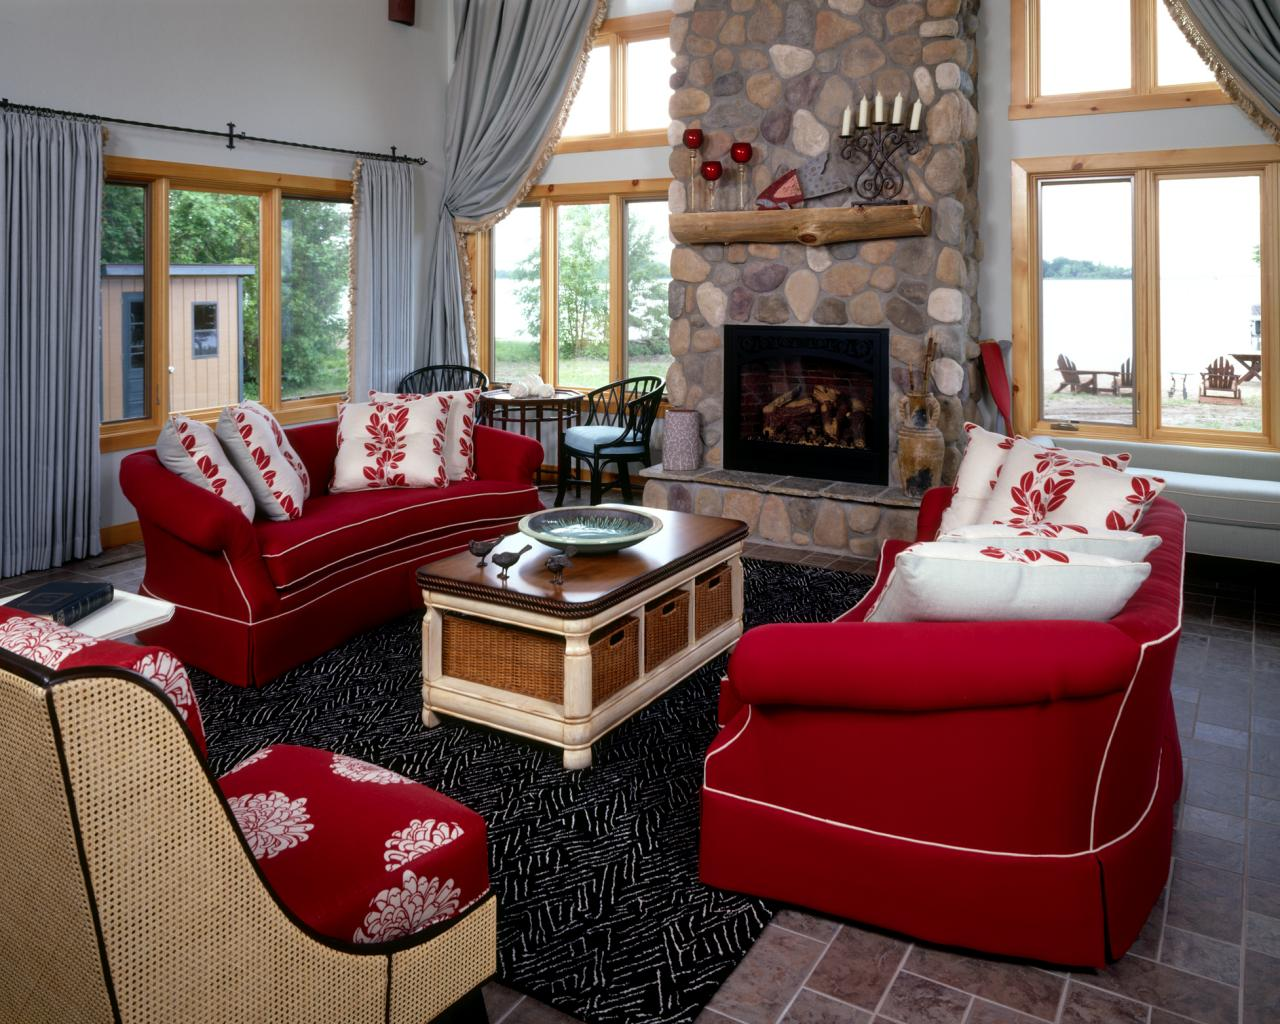 New Red Sofa Living Room Ideas Plans Free